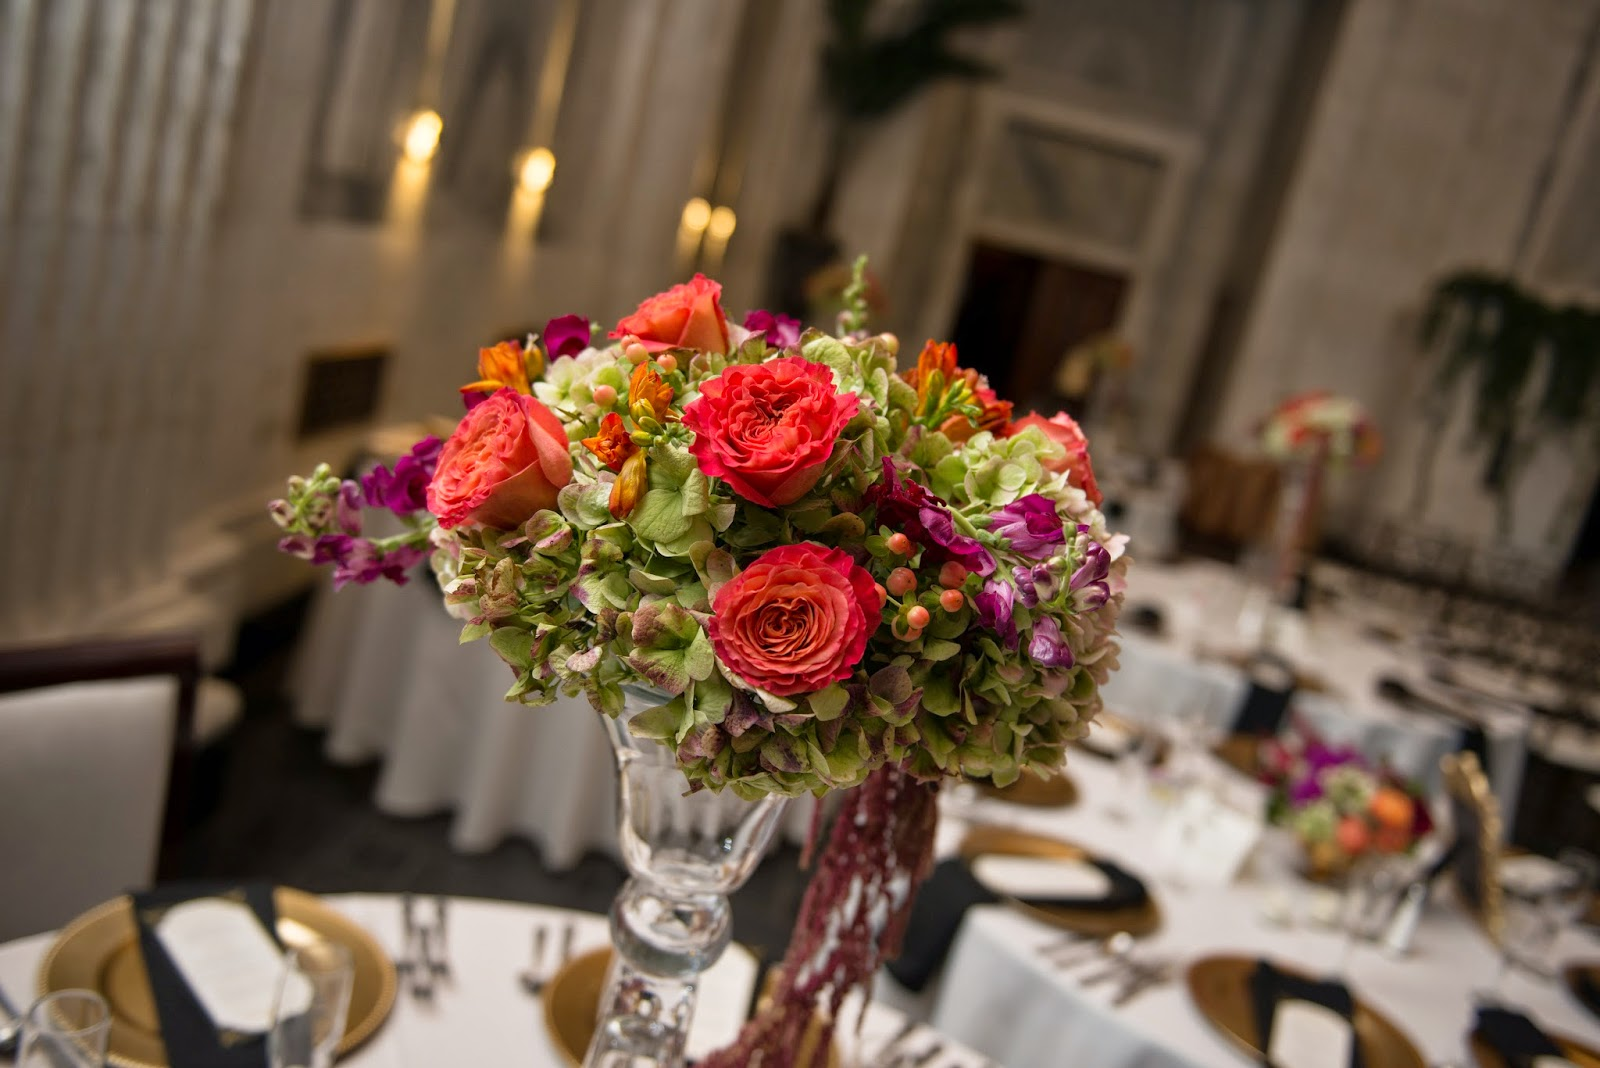 Sixty State Place Wedding - Table Centerpiece - Downtown Albany NY Wedding - Old Historical Bank Wedding - Historical Venue Wedding - Upstate NY - Splendid Stems Floral Designs